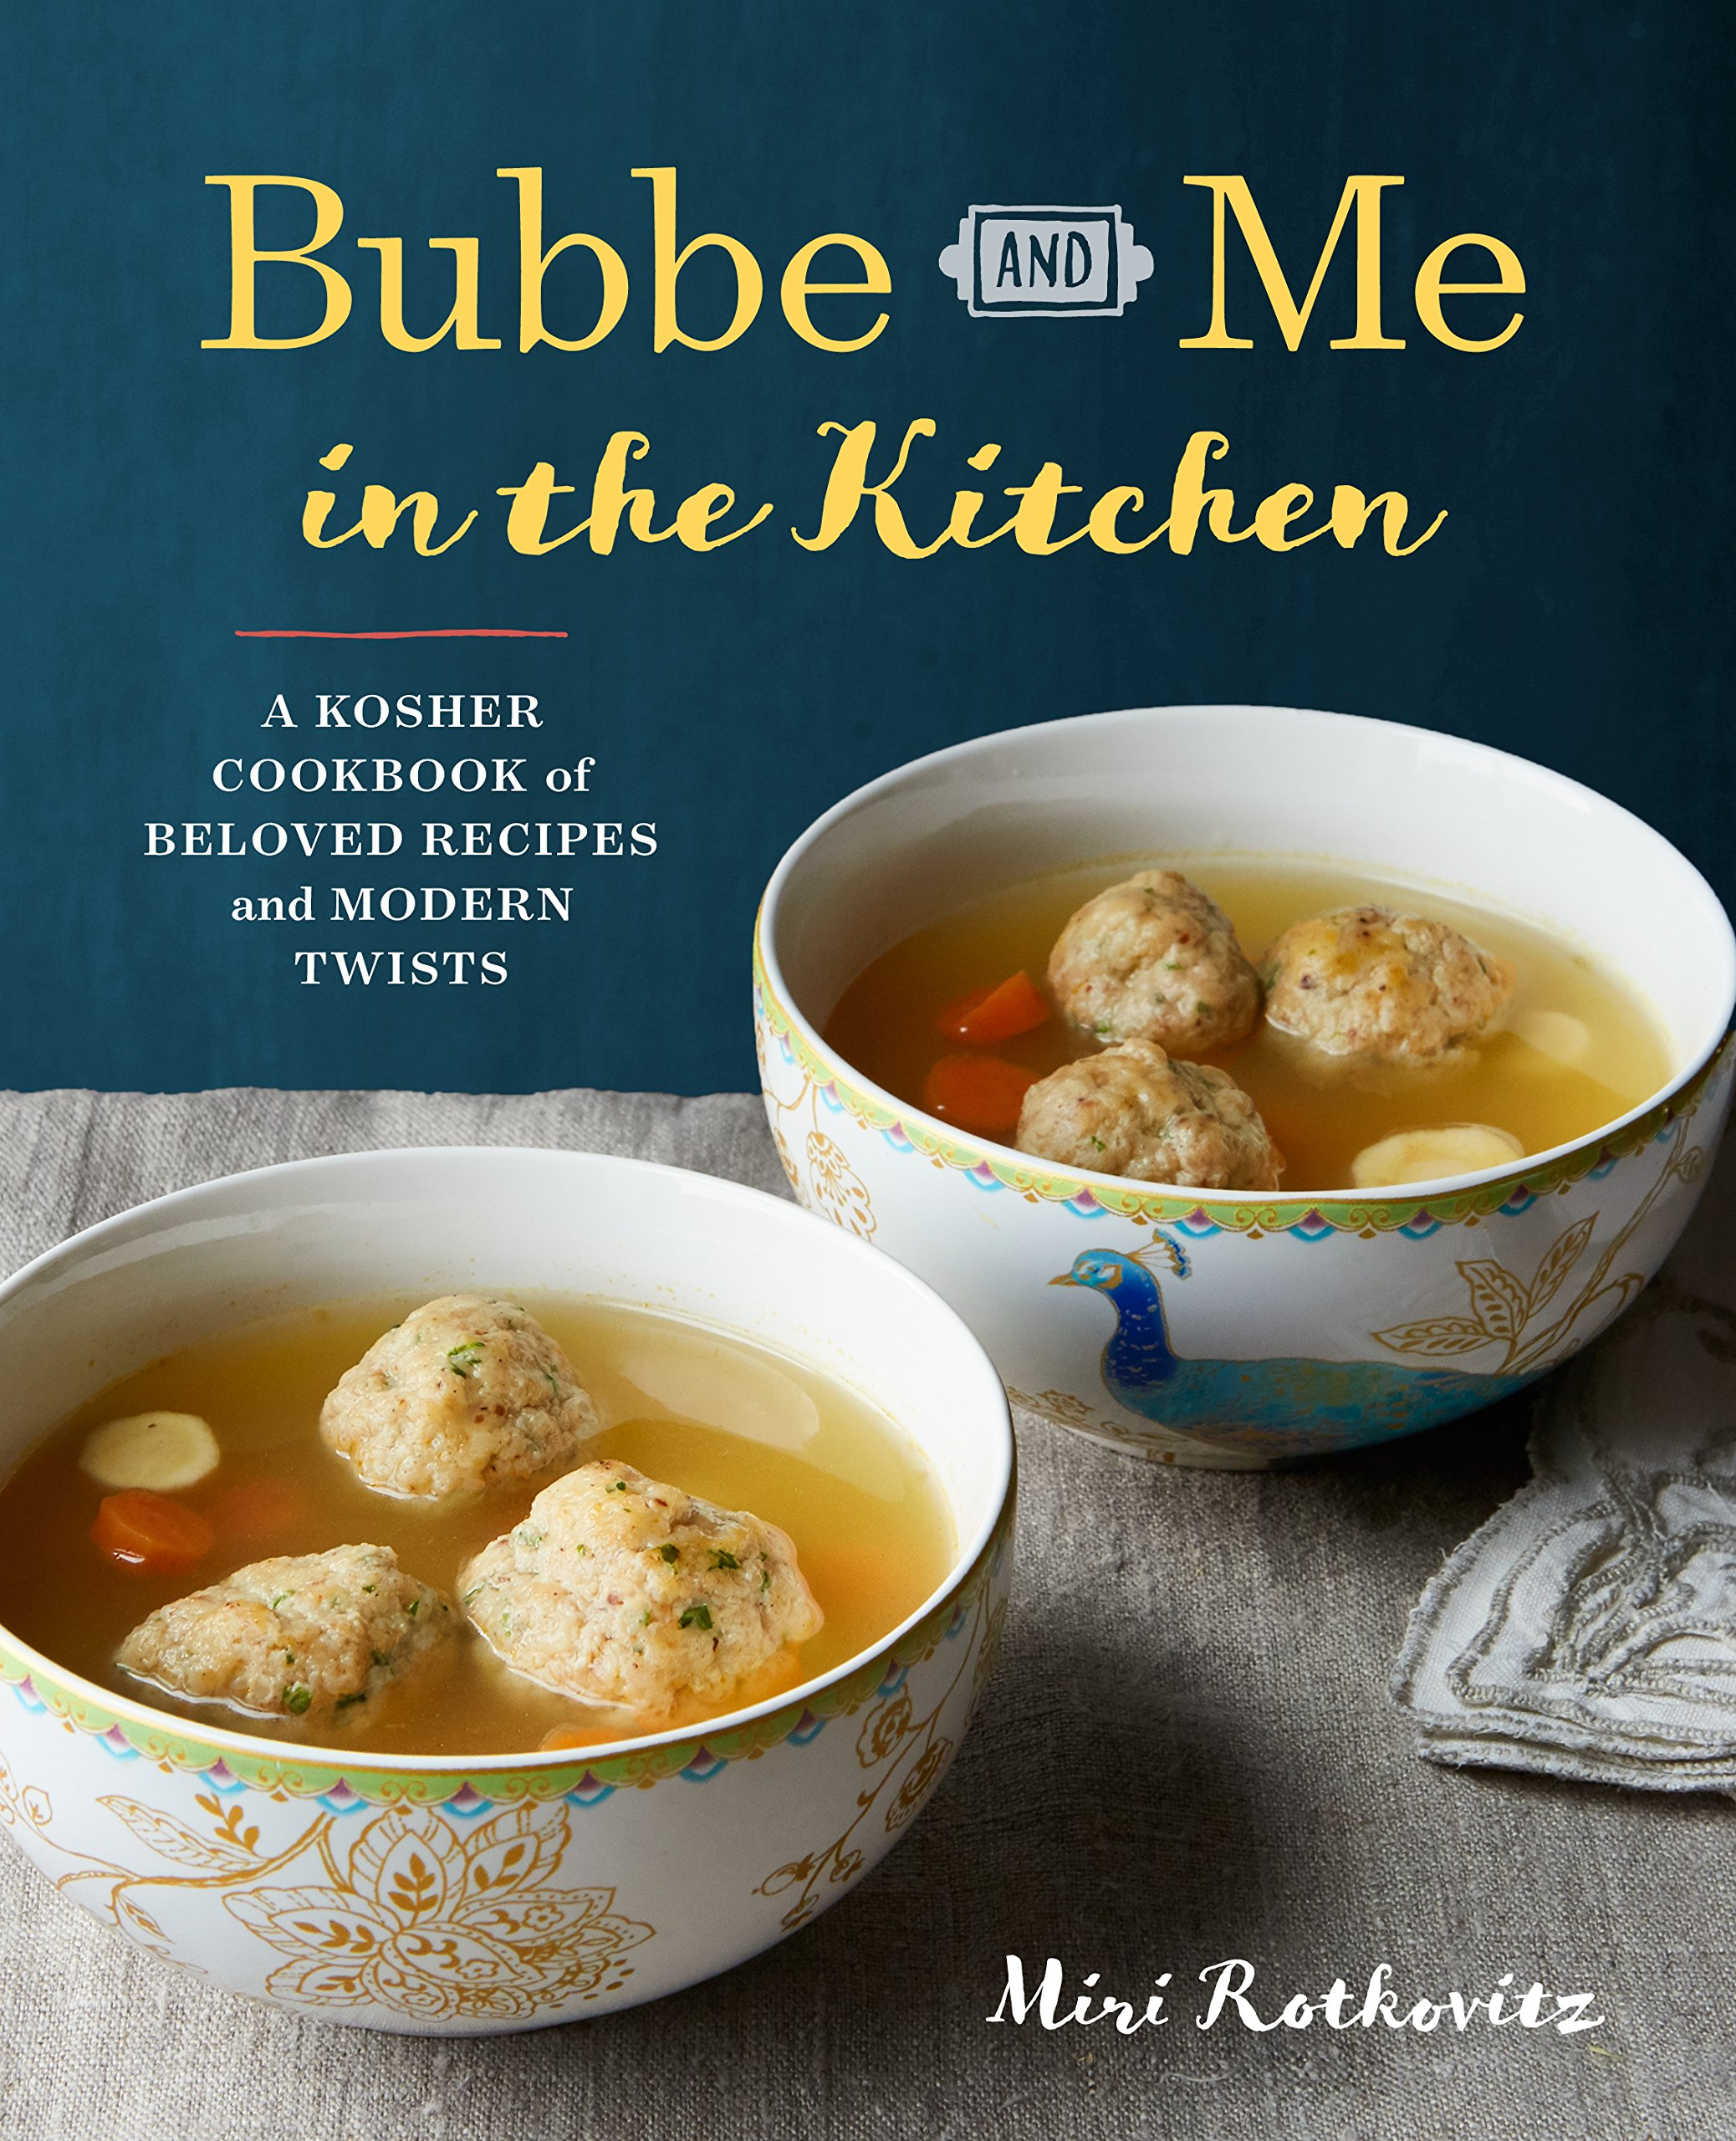 Bubbe And Me In The Kitchen A Kosher Cookbook Of Beloved